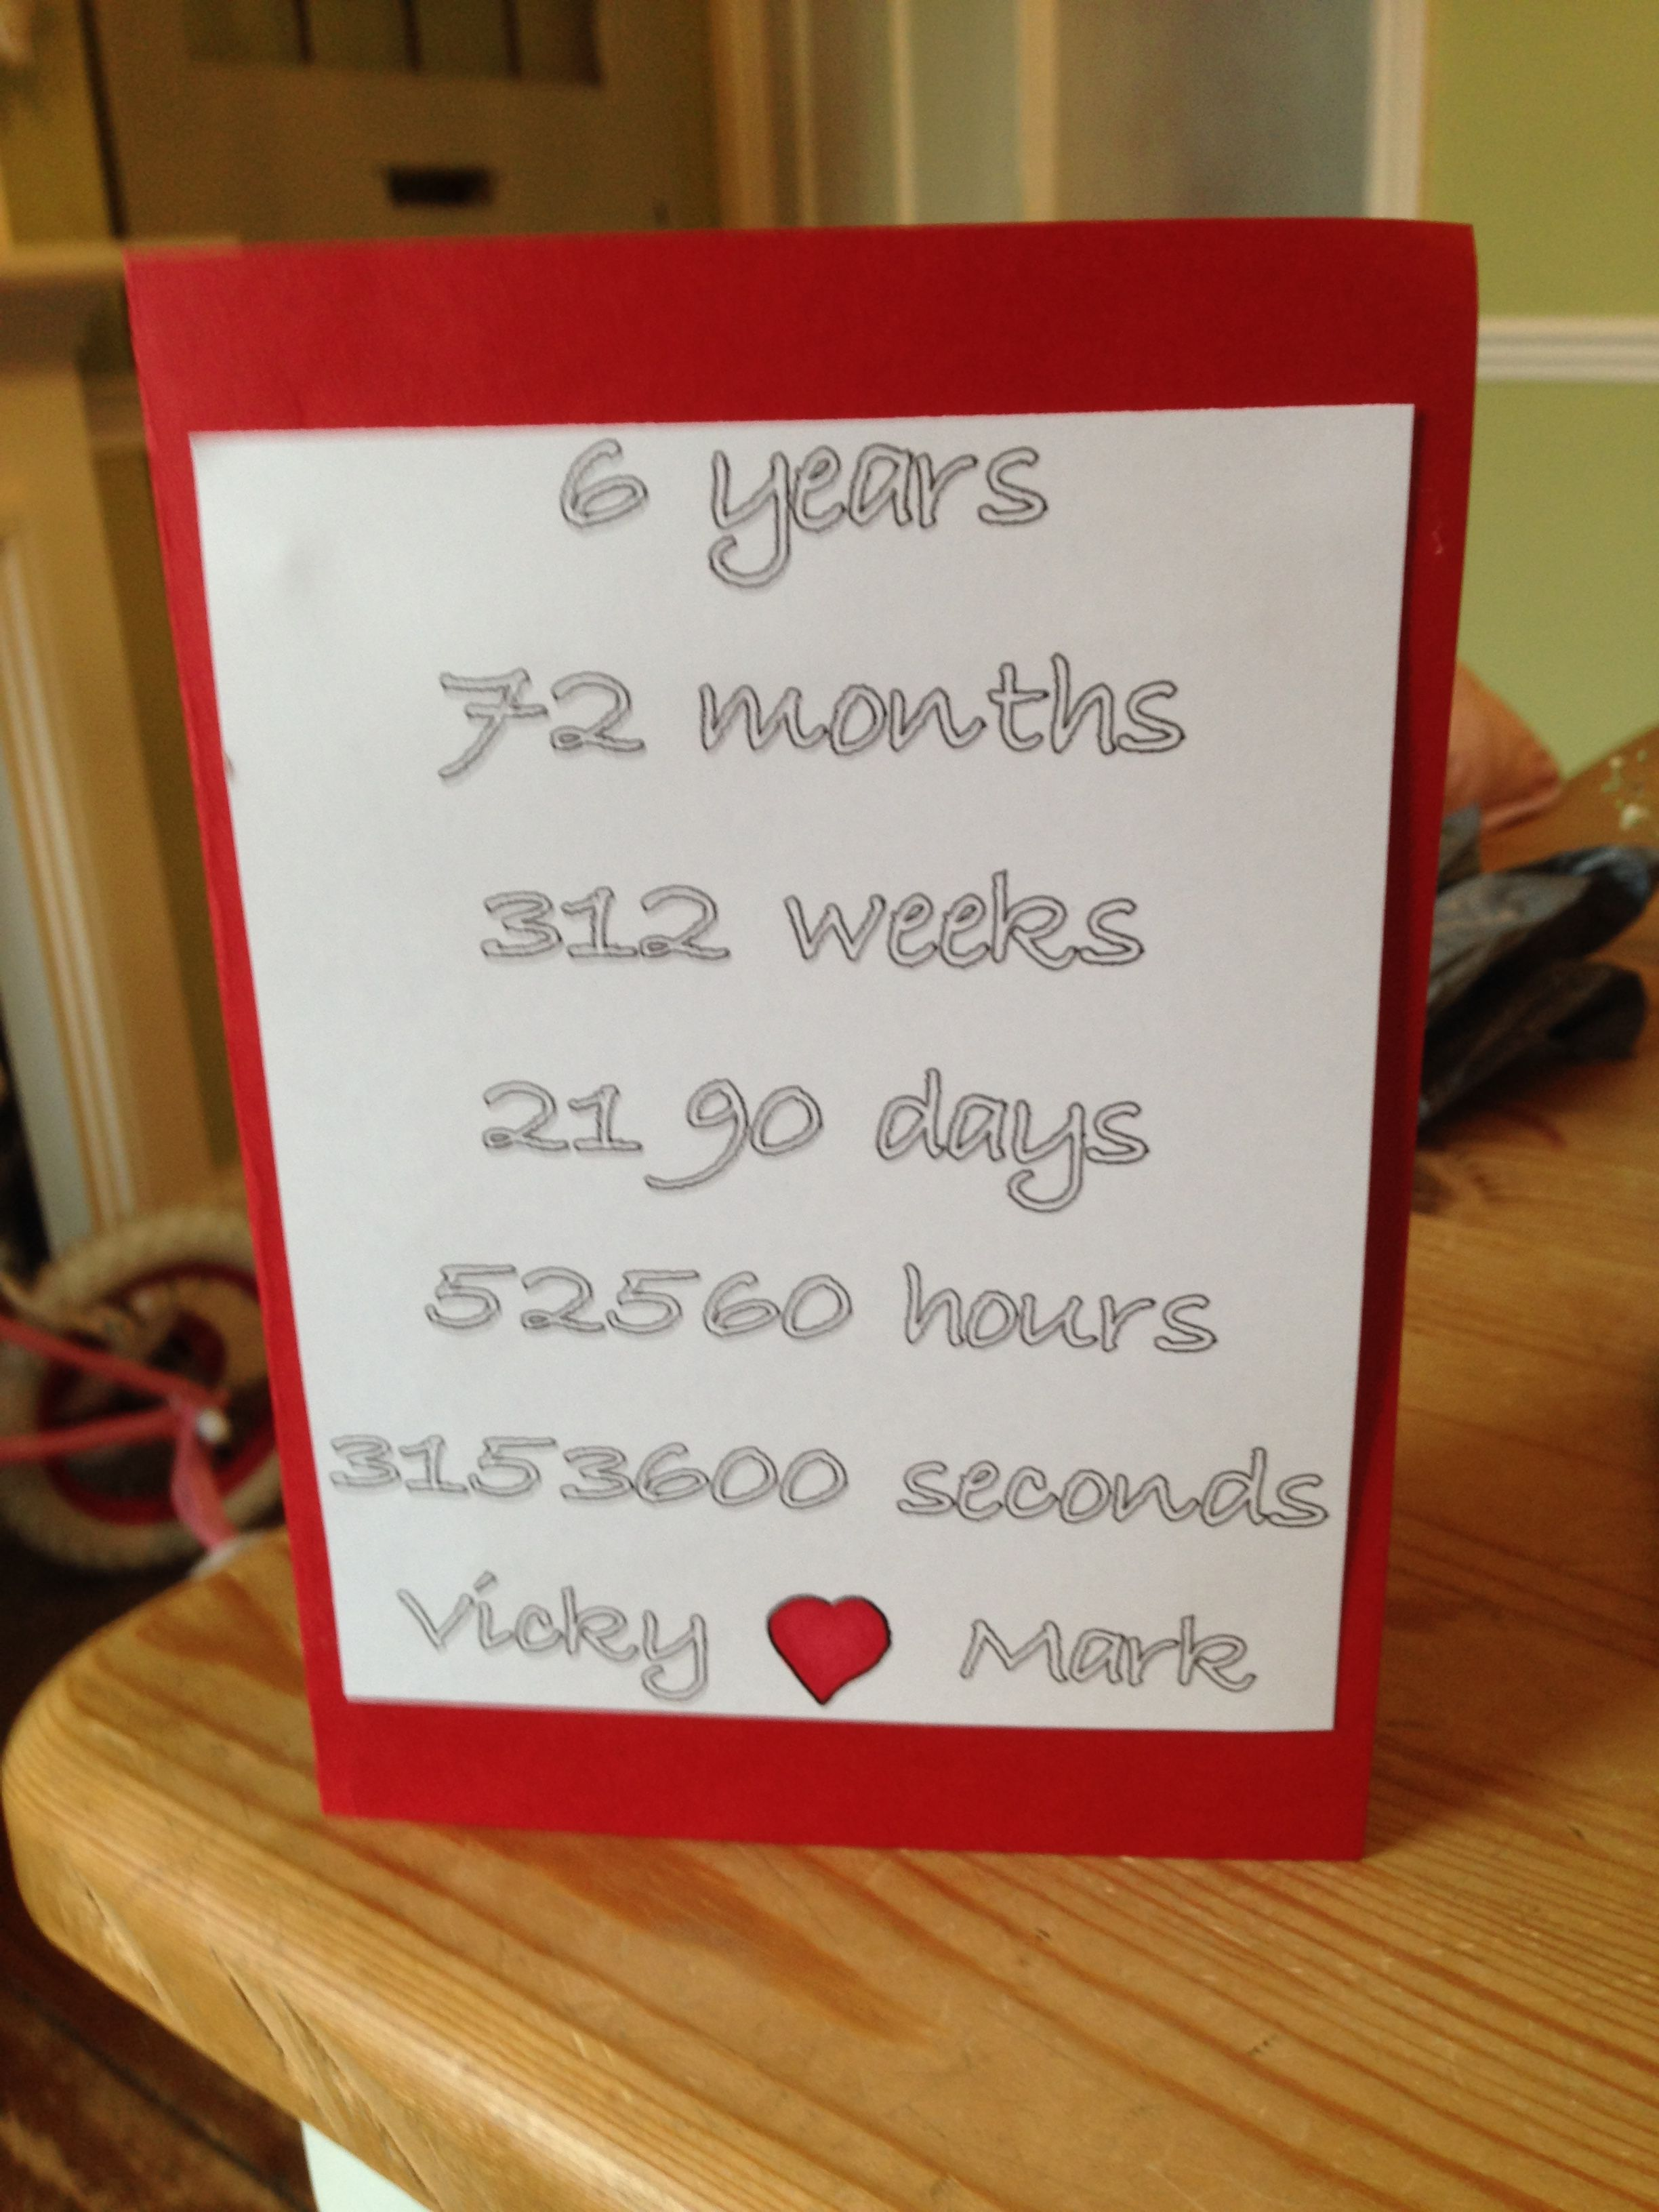 6 Year Anniversary Card Love It Pinterest Anniversaries Gift